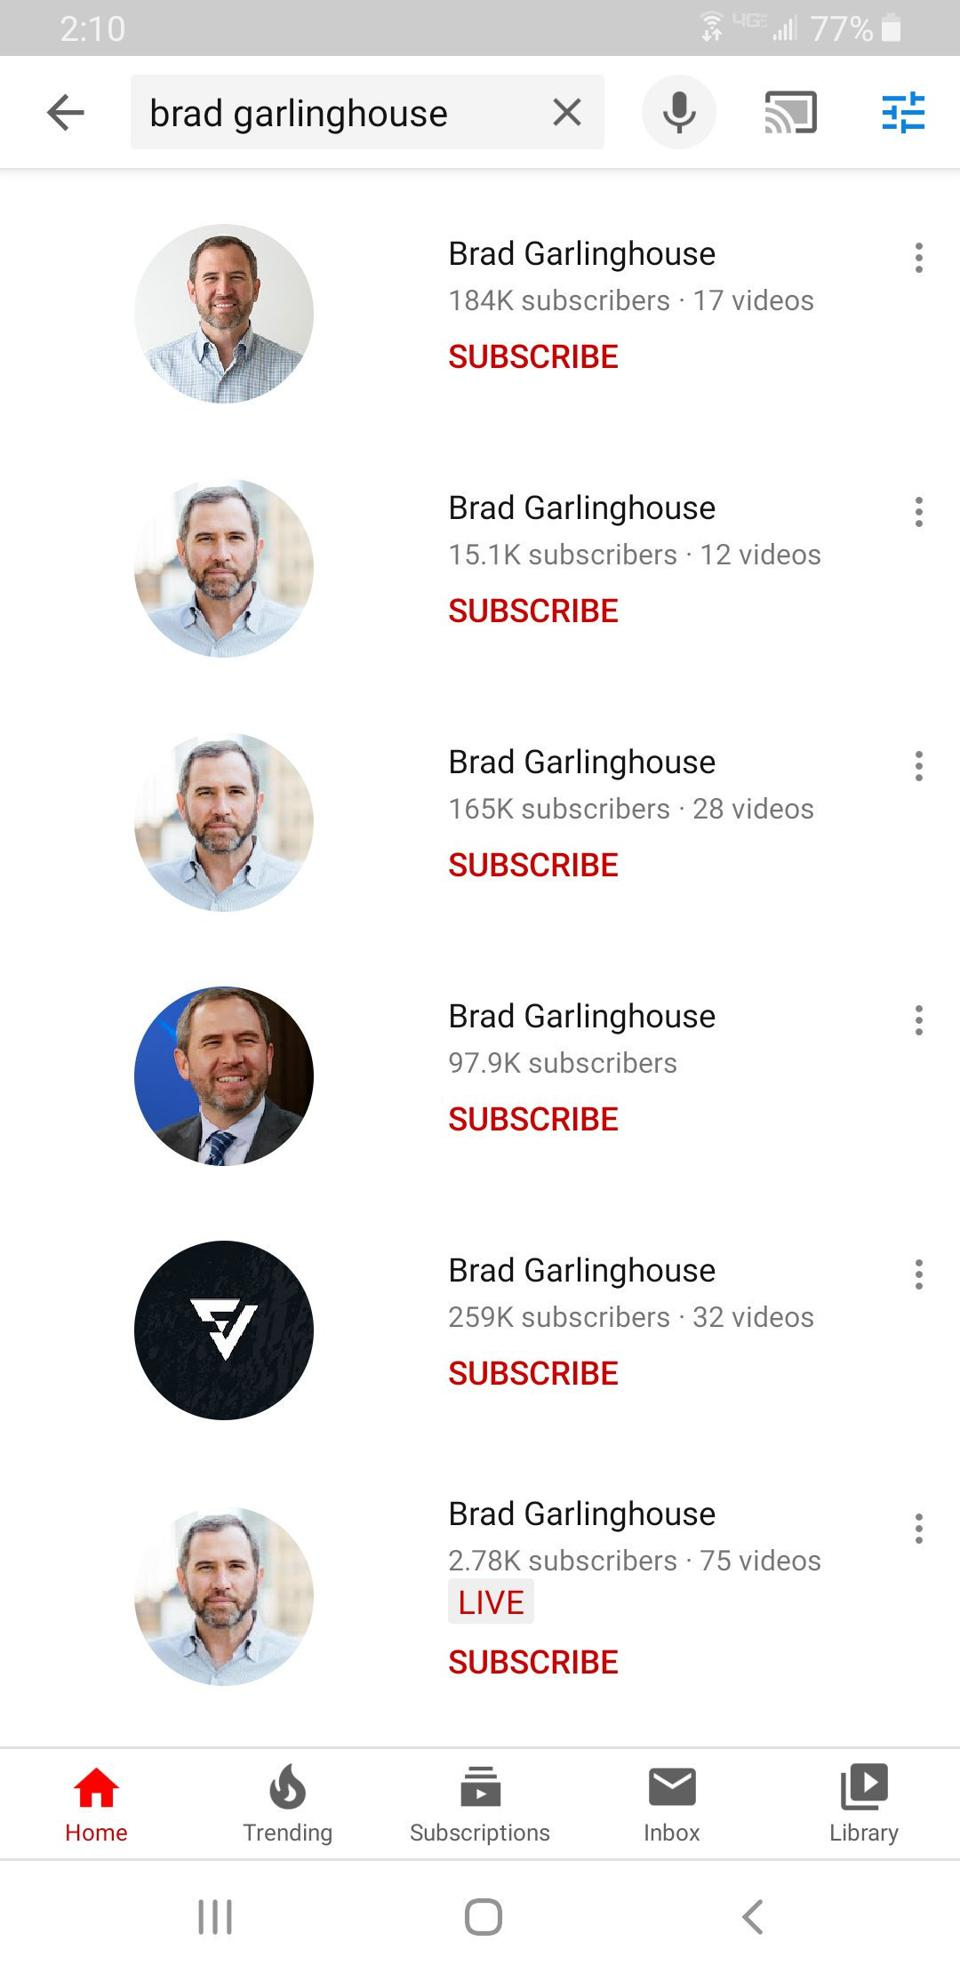 Other ″Brad Garlinghouses″ that have seemingly taken over existing channels.